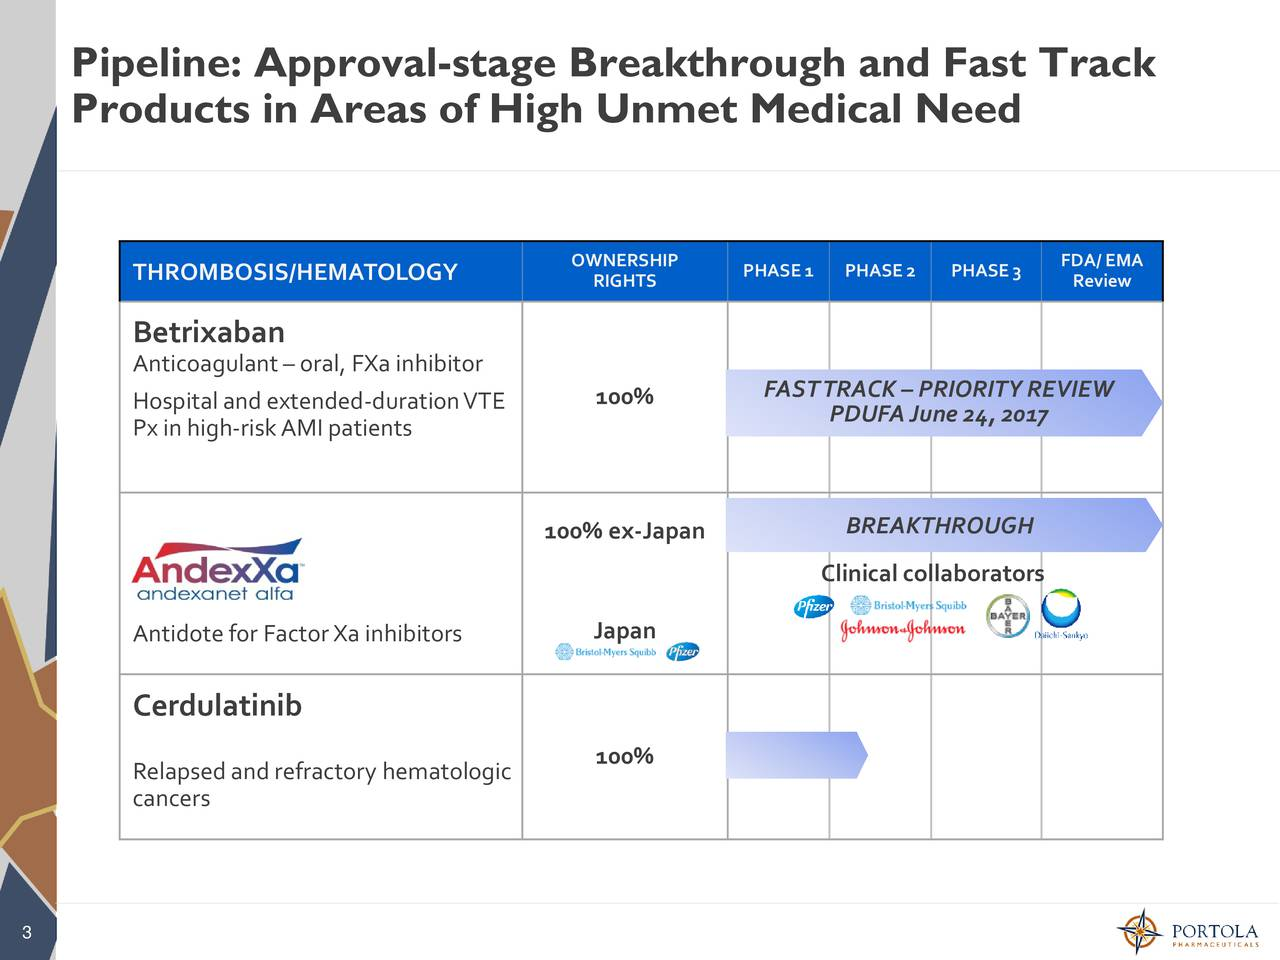 Products in Areas of High Unmet Medical Need THROMBOSIS/HEMATOLOGY OWNERSHIP PHASE 1 PHASE 2 PHASE 3 FDA/ EMA RIGHTS Review Betrixaban Anticoagulantoral, FXainhibitor 100% FASTTRACK PRIORITY REVIEW Hospitalandextended-durationVTE PDUFAJune 24, 2017 Px in high-riskAMI patients 100% ex-Japan BREAKTHROUGH Clinical collaborators Antidote for FactorXa inhibitors Japan Cerdulatinib 100% Relapsed and refractory hematologic cancers 3